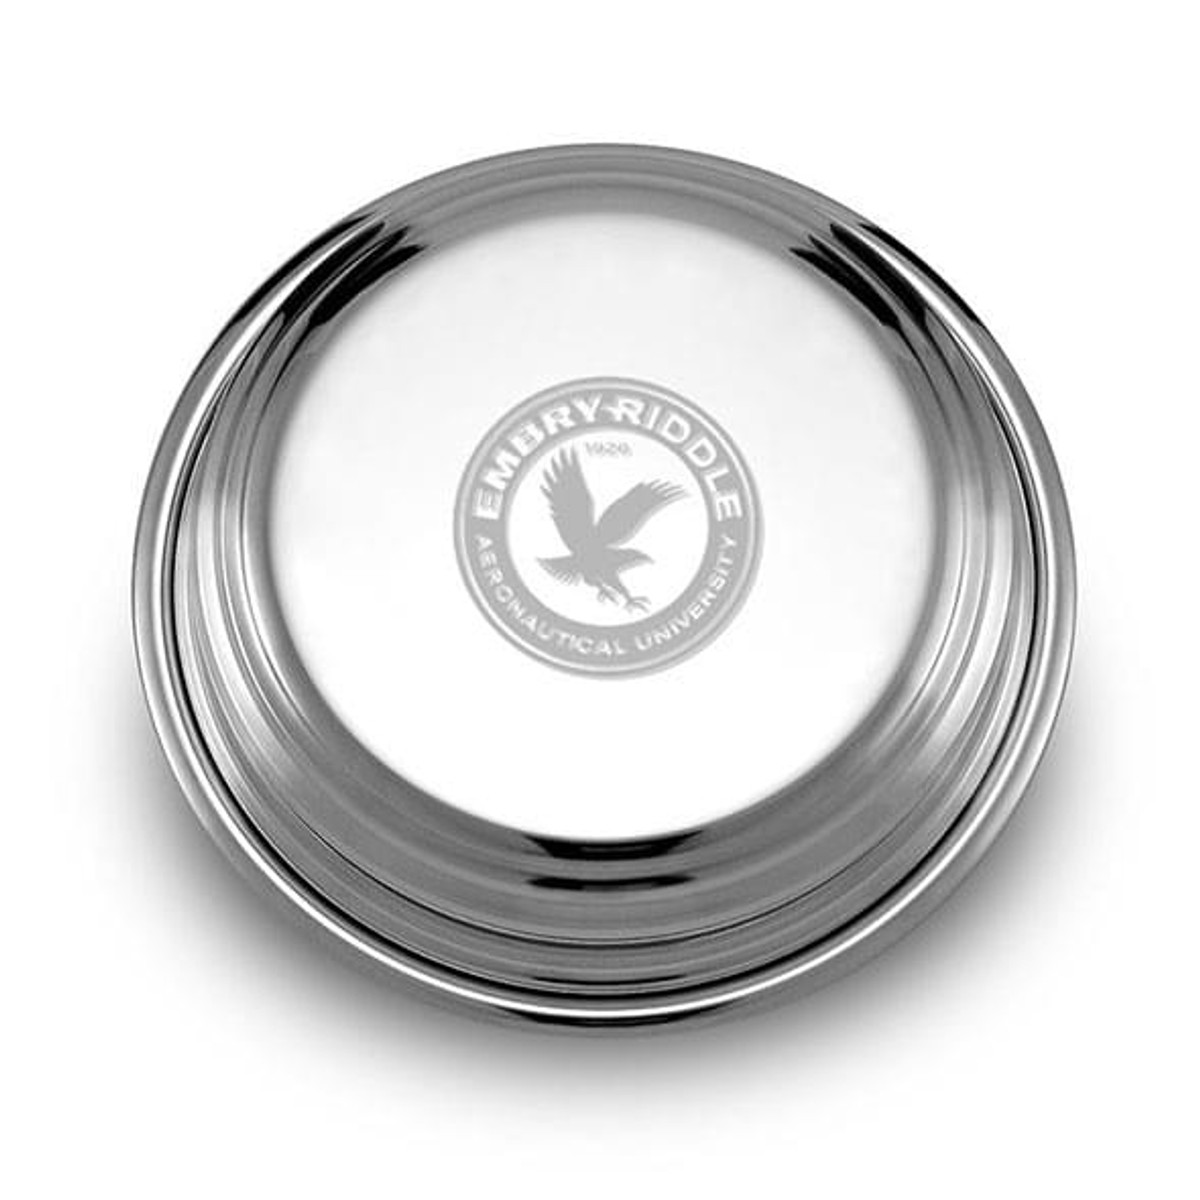 Embry Riddle Pewter Paperweight At M Lahart Amp Co